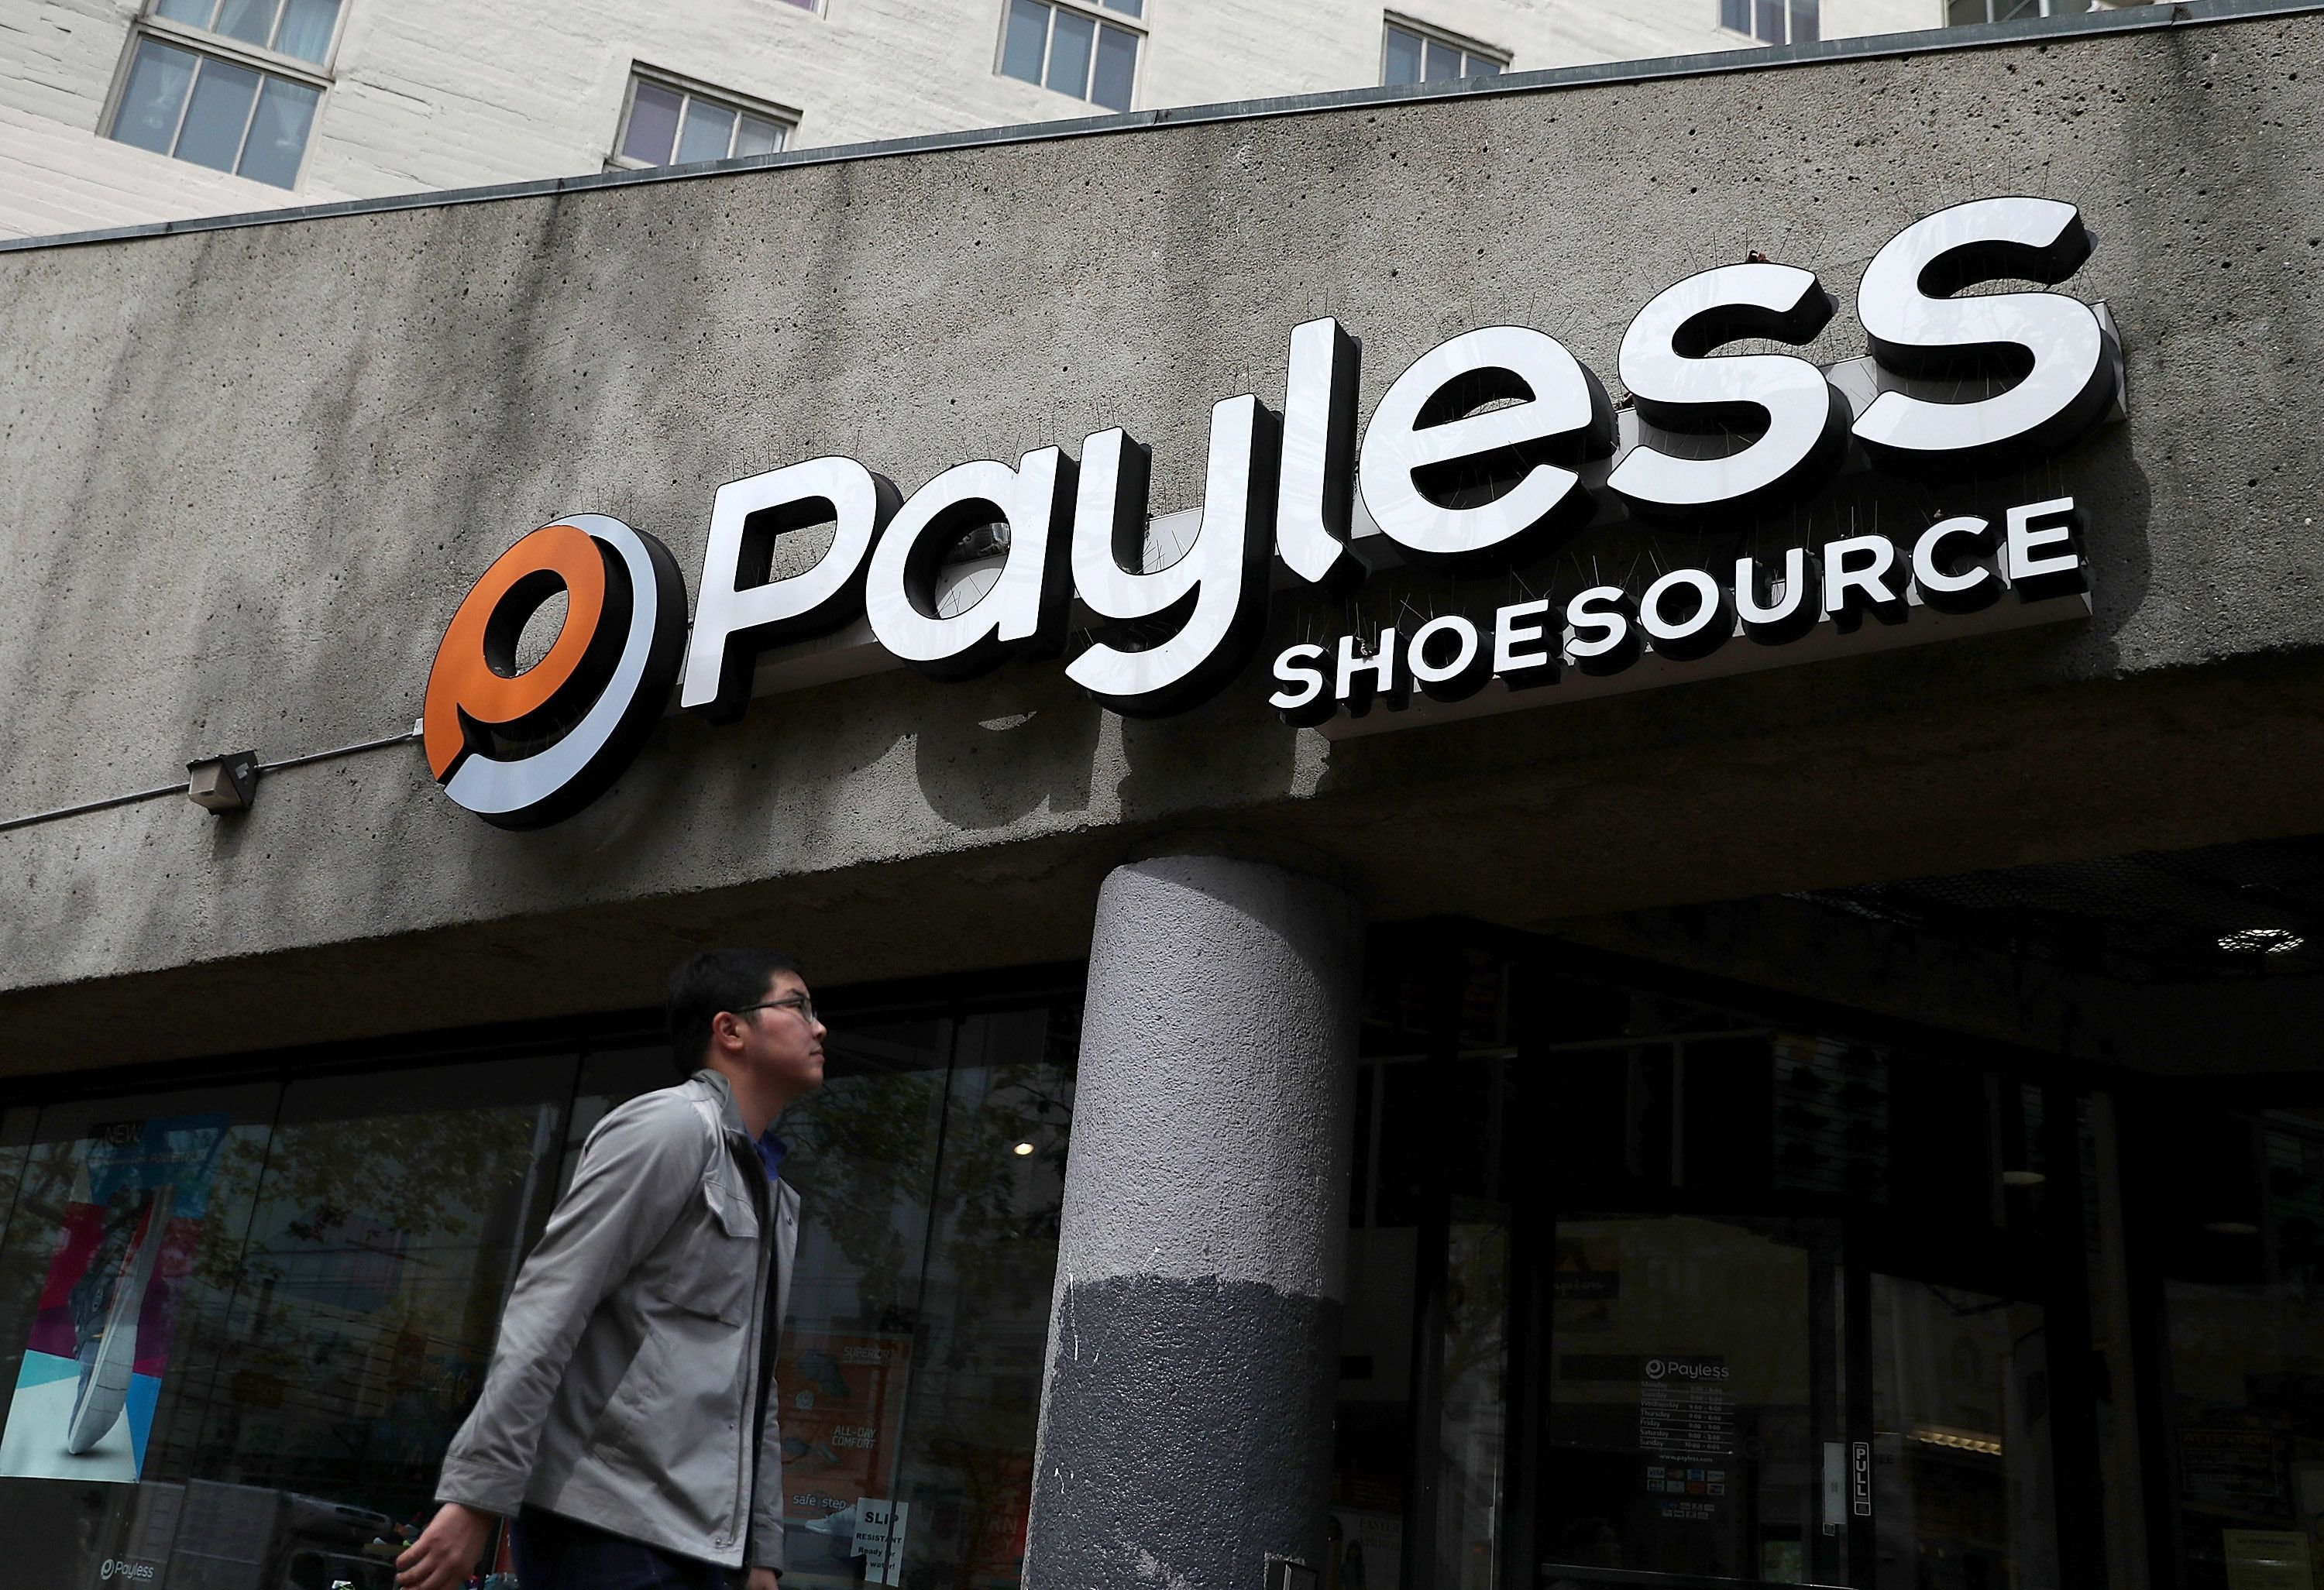 Payless Pranks Fashionistas With Fake Luxury Shoe Brand Called